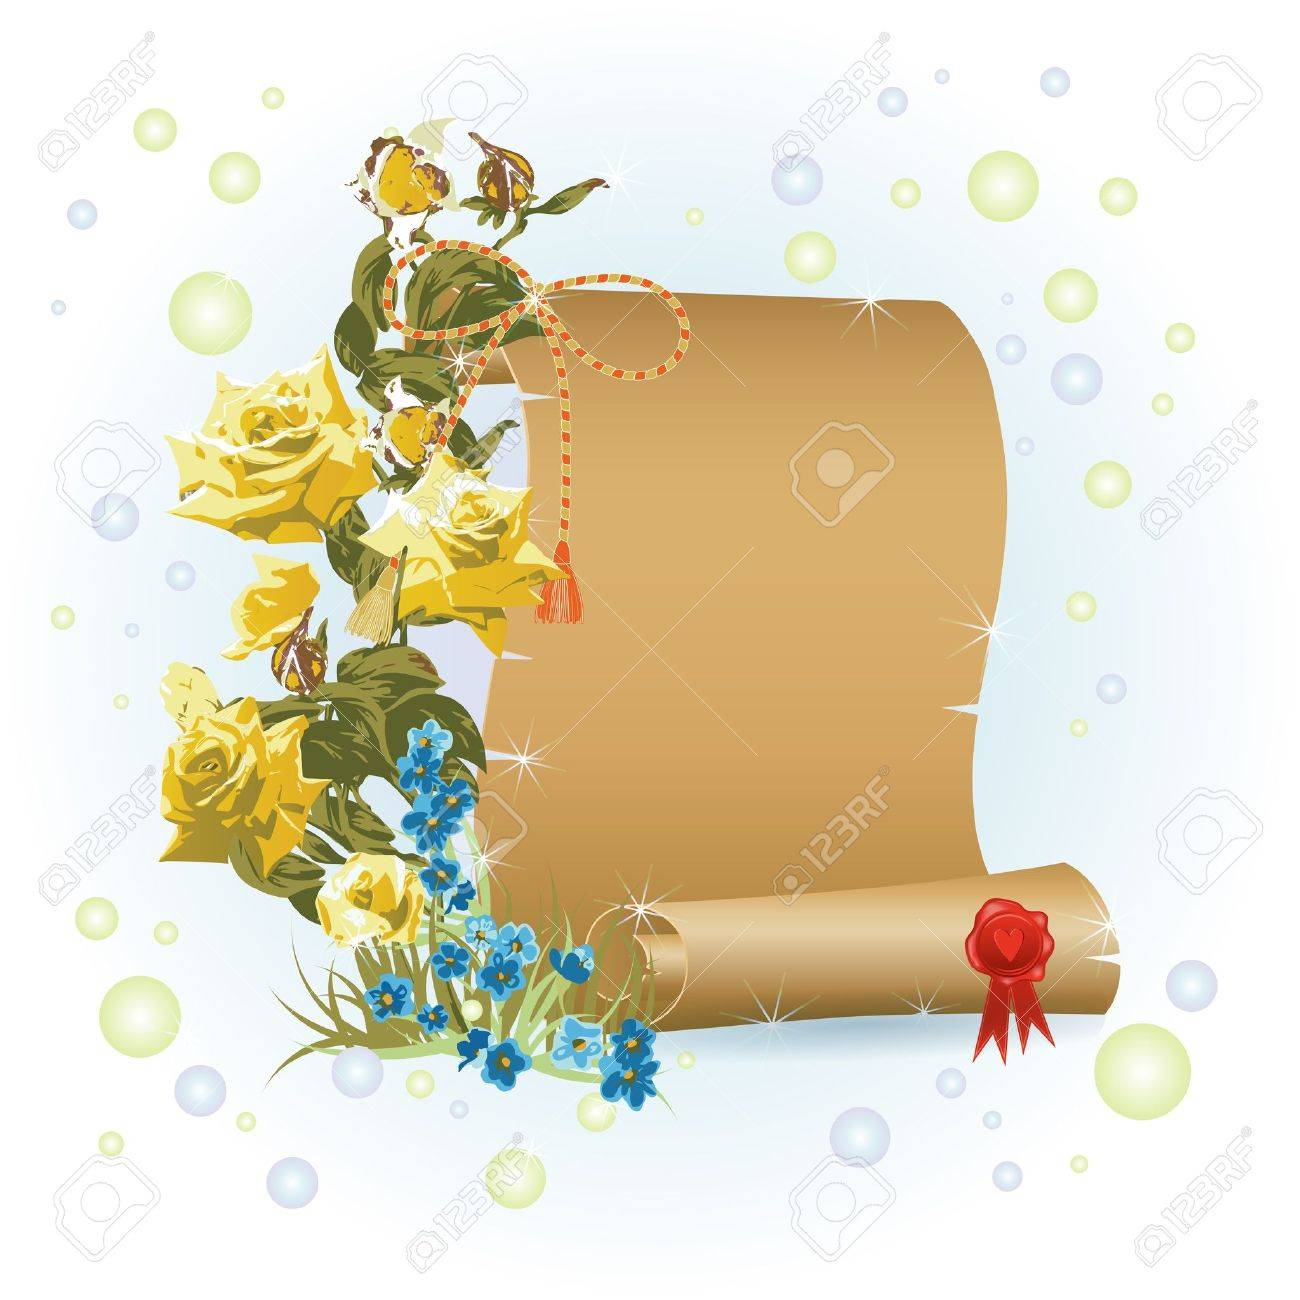 Papyrus and branch with flowers over light background Stock Vector - 14234860